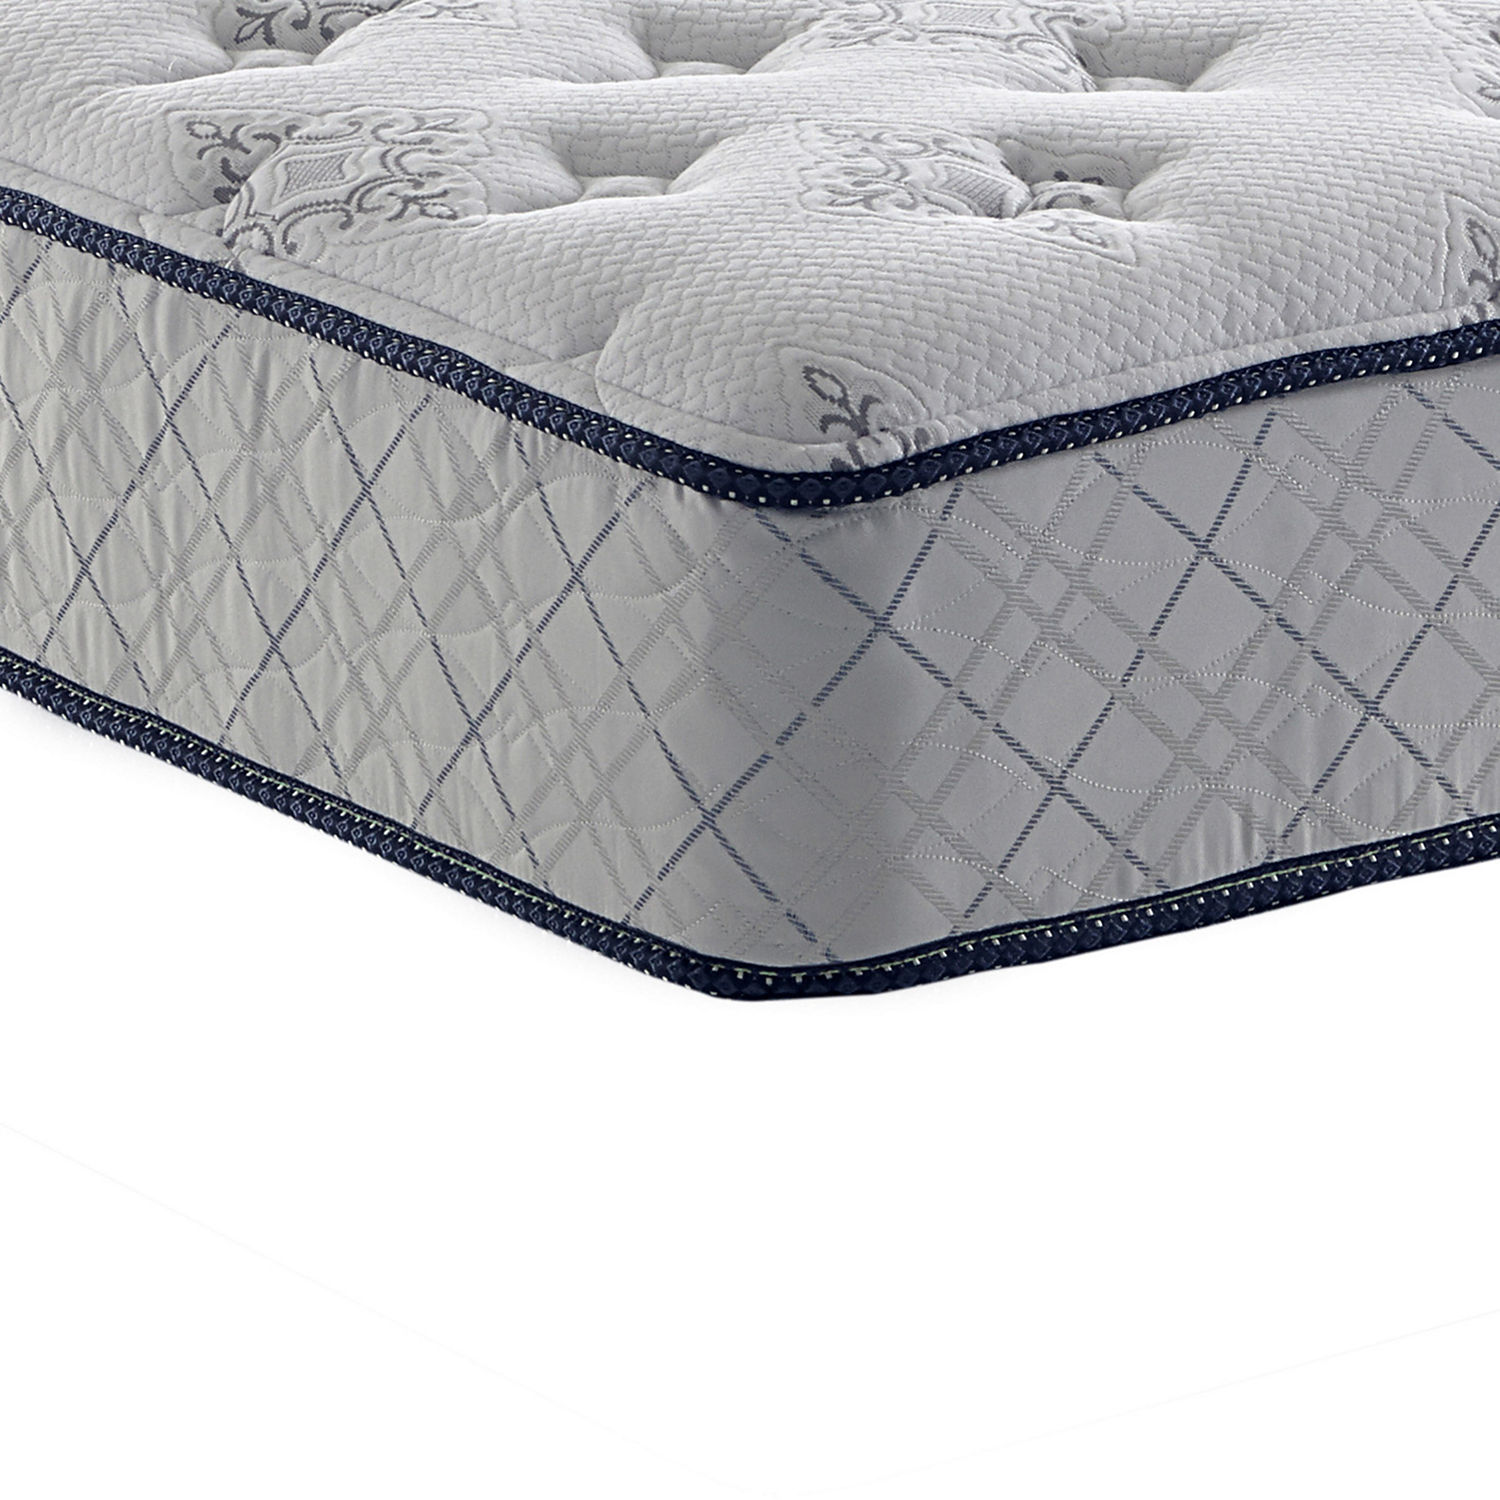 mattress off my jcpenney mattresses and coupon daily retail